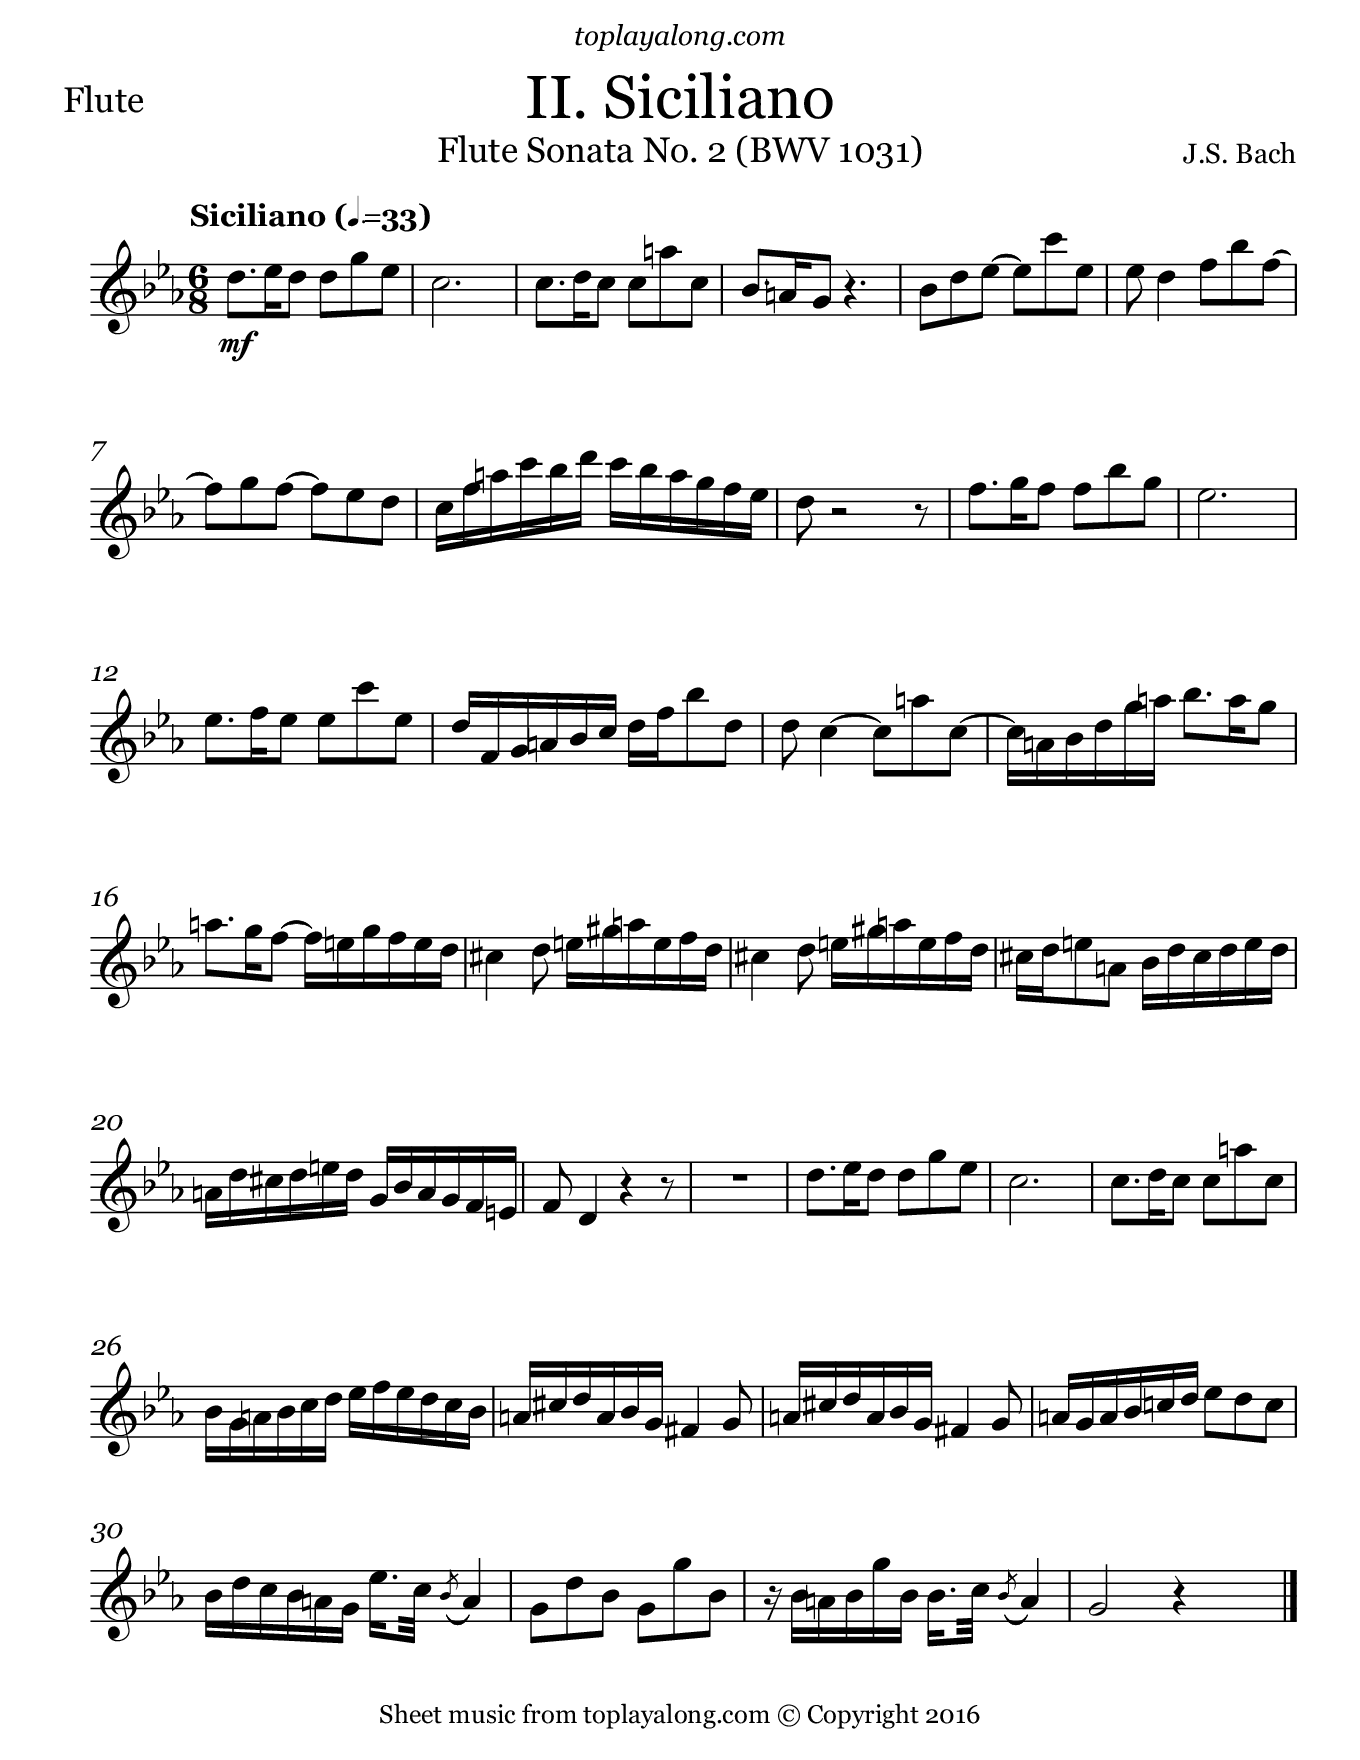 Flute Sonata BWV 1031 (II. Siciliano) by J. S. Bach. Sheet music for Flute, page 1.